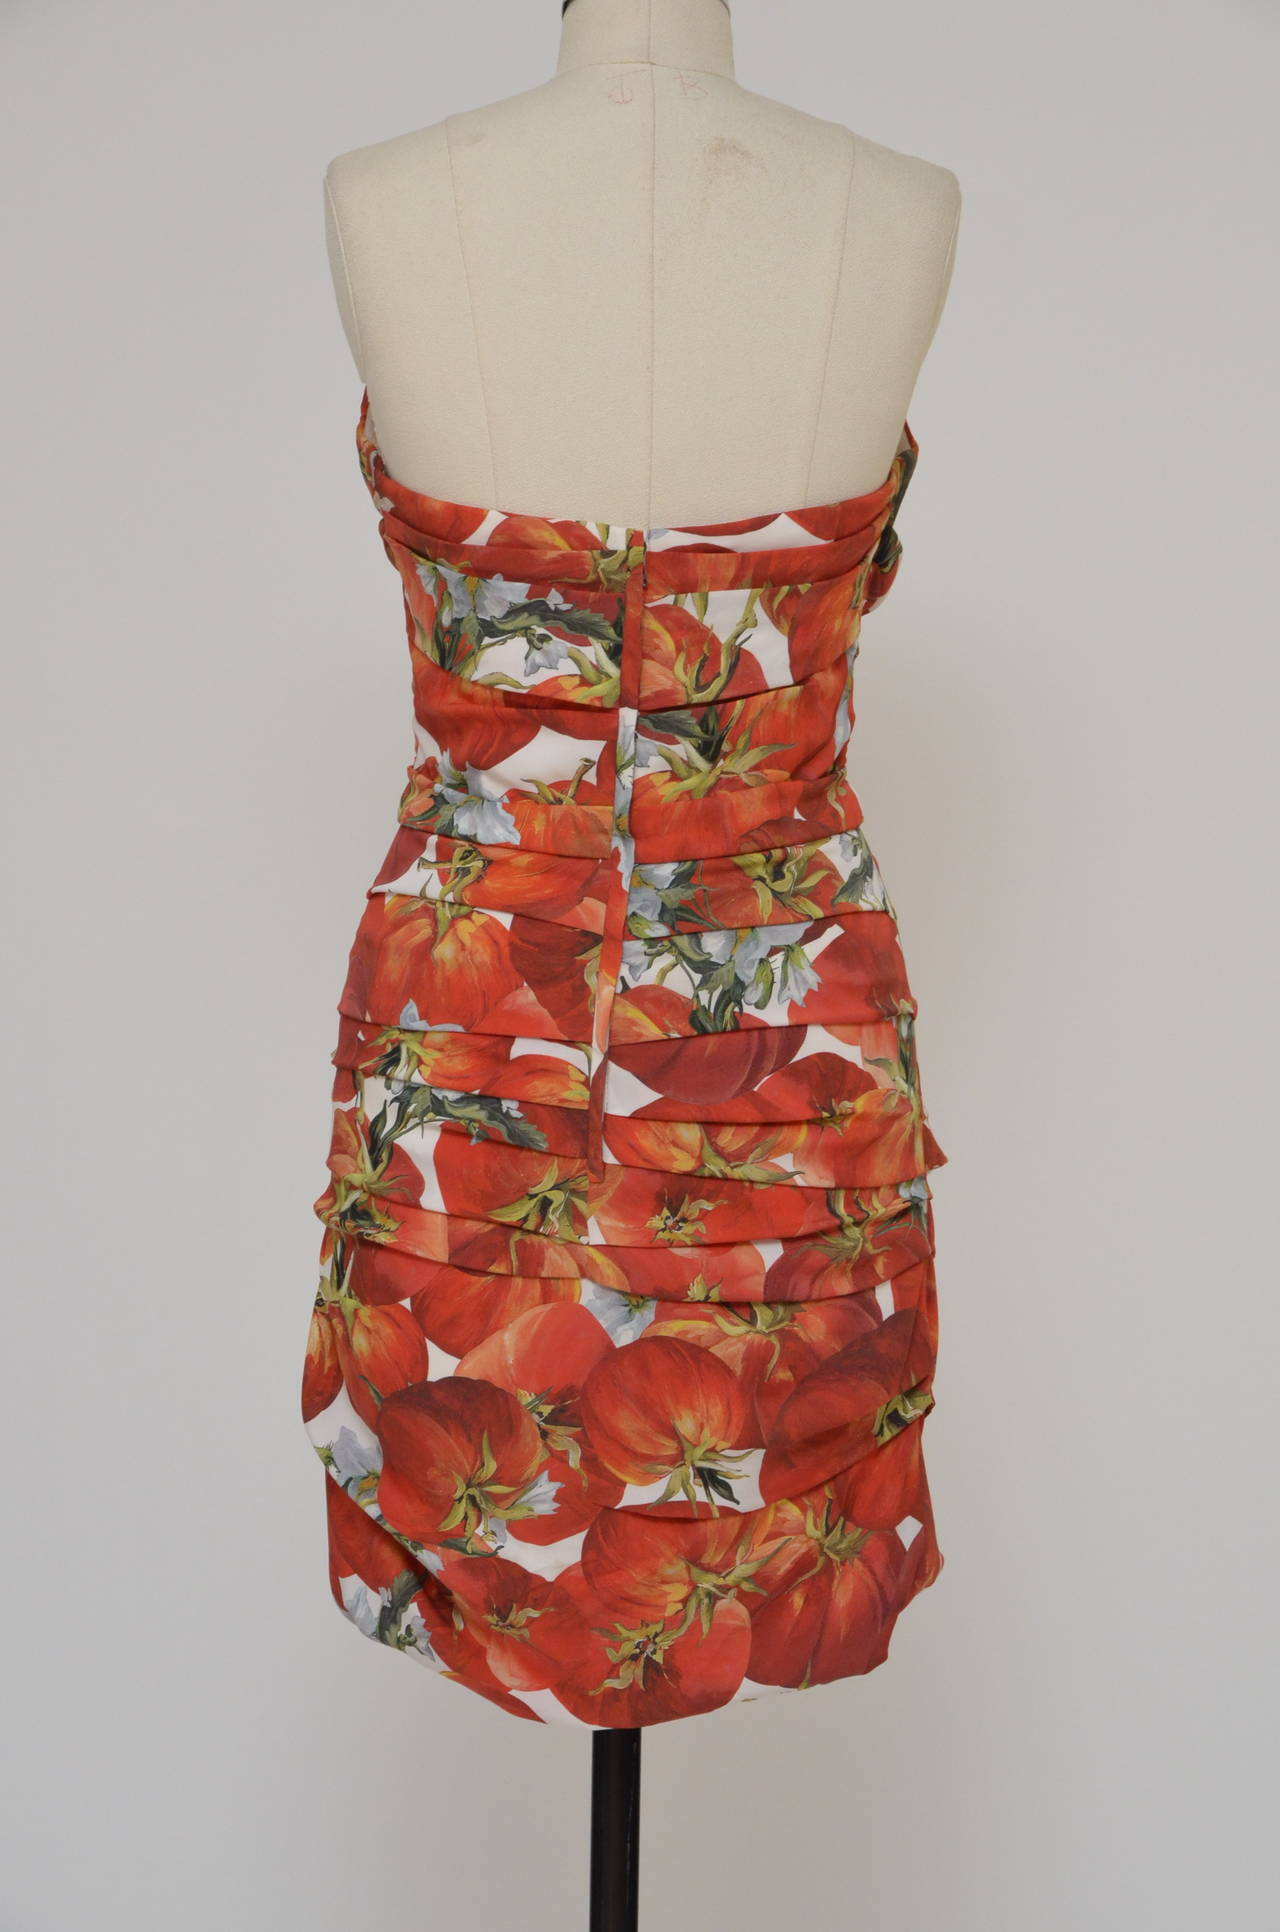 Dolce & Gabbana tomato print silk dress.  Excellent condition. Size 44.Photographed on the size 6 US  mannequin . Fabric:94% silk,6% elastan. Made in italy.  FINAL SALE.